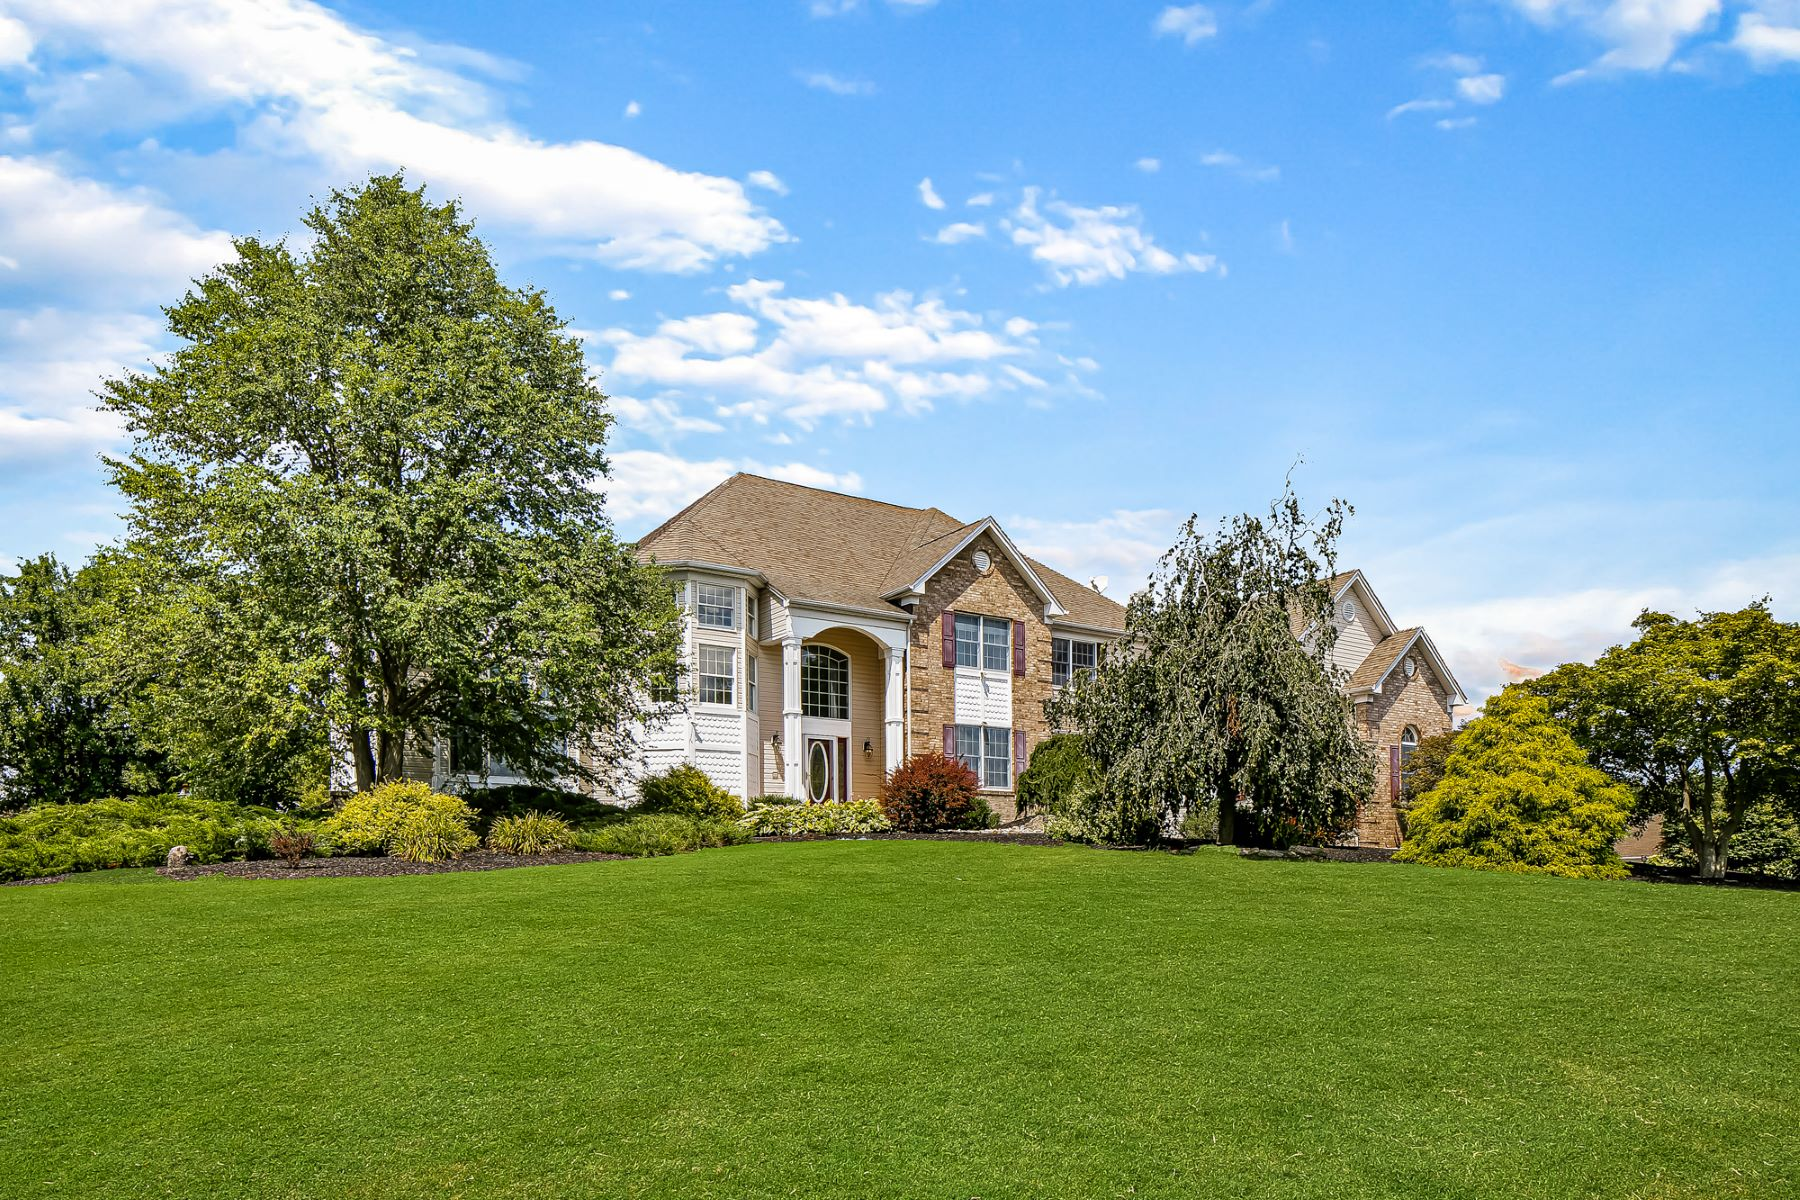 Single Family Homes for Active at Sophisticated Amwell Valley Retreat 109 Back Brook Road East Amwell Township, New Jersey 08551 United States